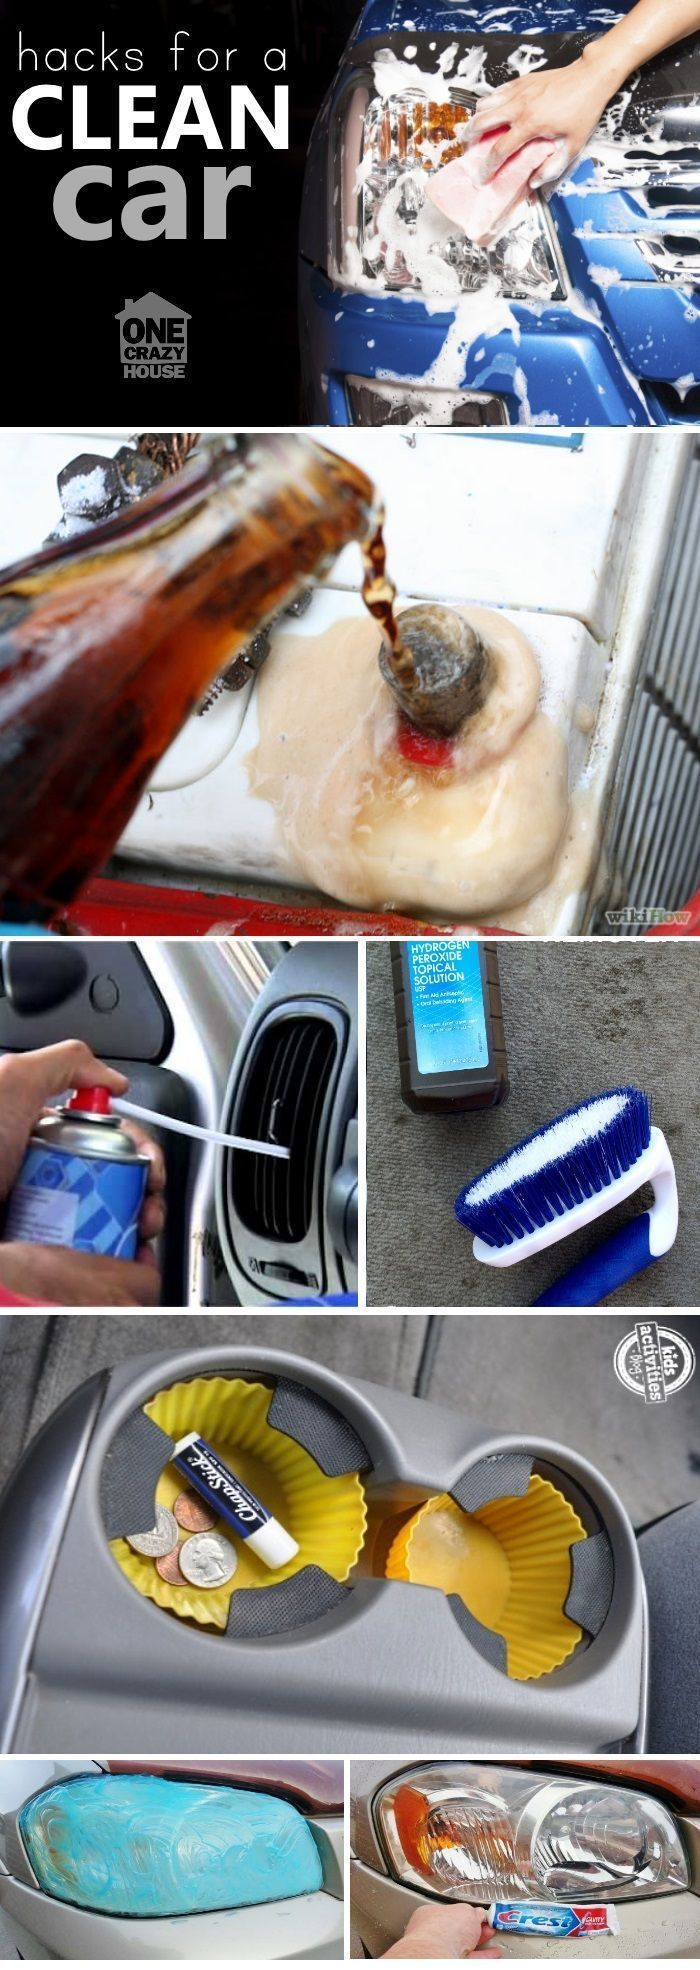 25 Best Ideas About Auto Detailing On Pinterest Car Cleaning Tips Spark Auto And Cleaning